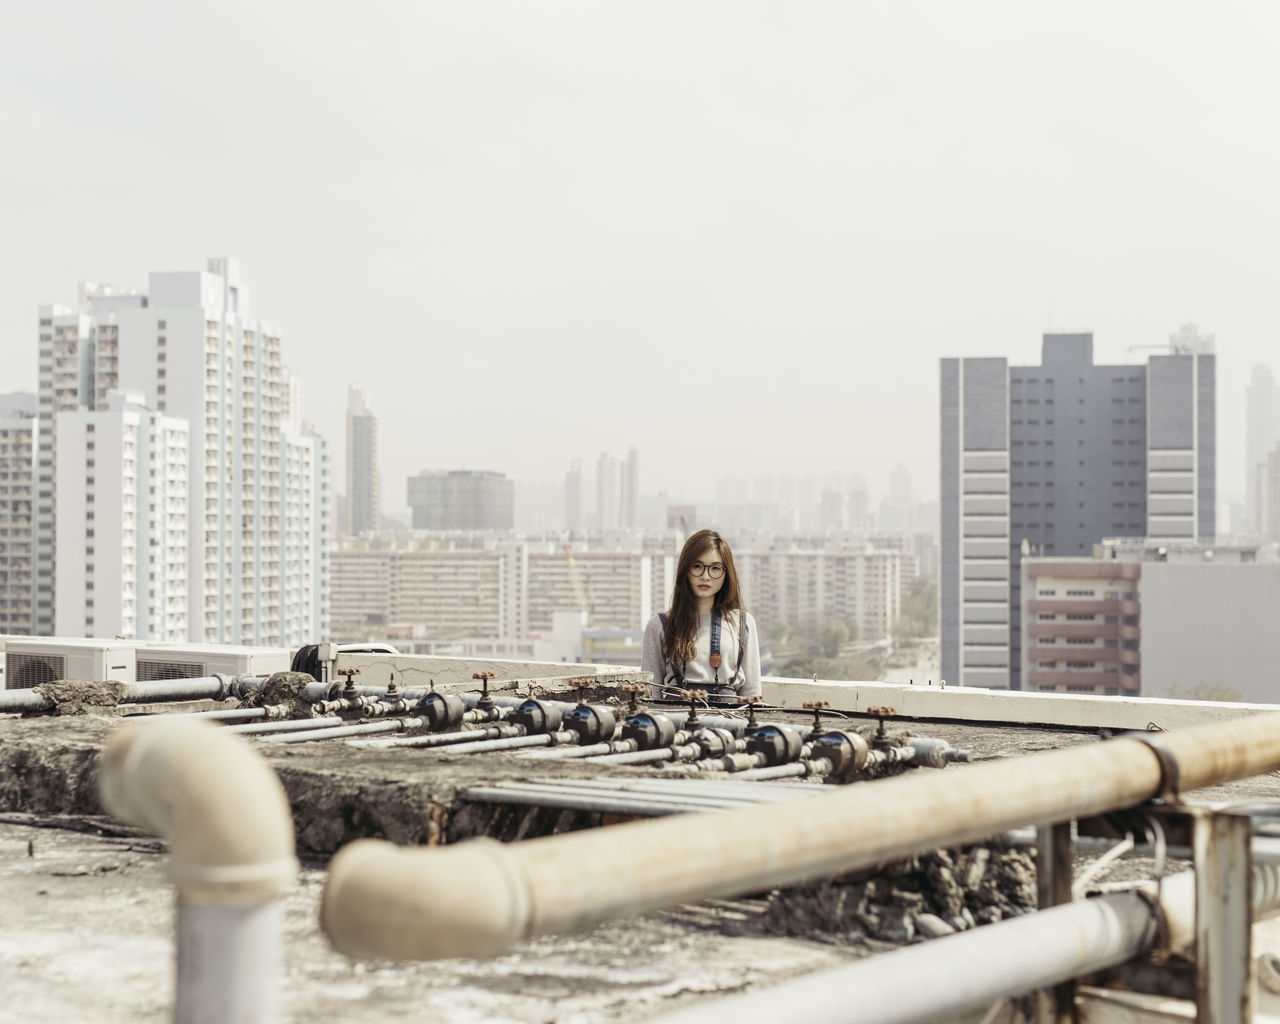 Portrait Of Beautiful Woman Standing By Pipeline On Building Terrace